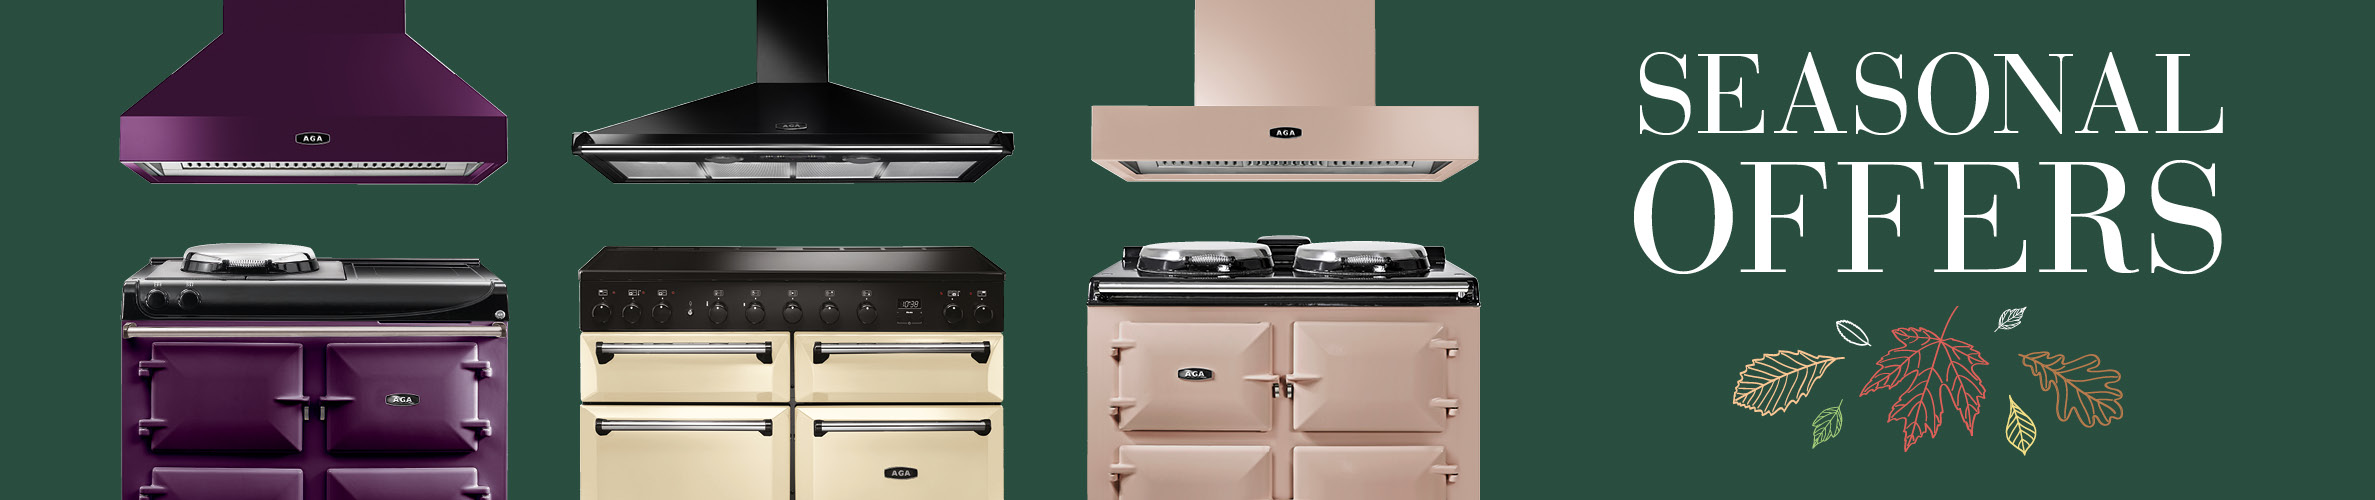 AGA Seasonal Offers